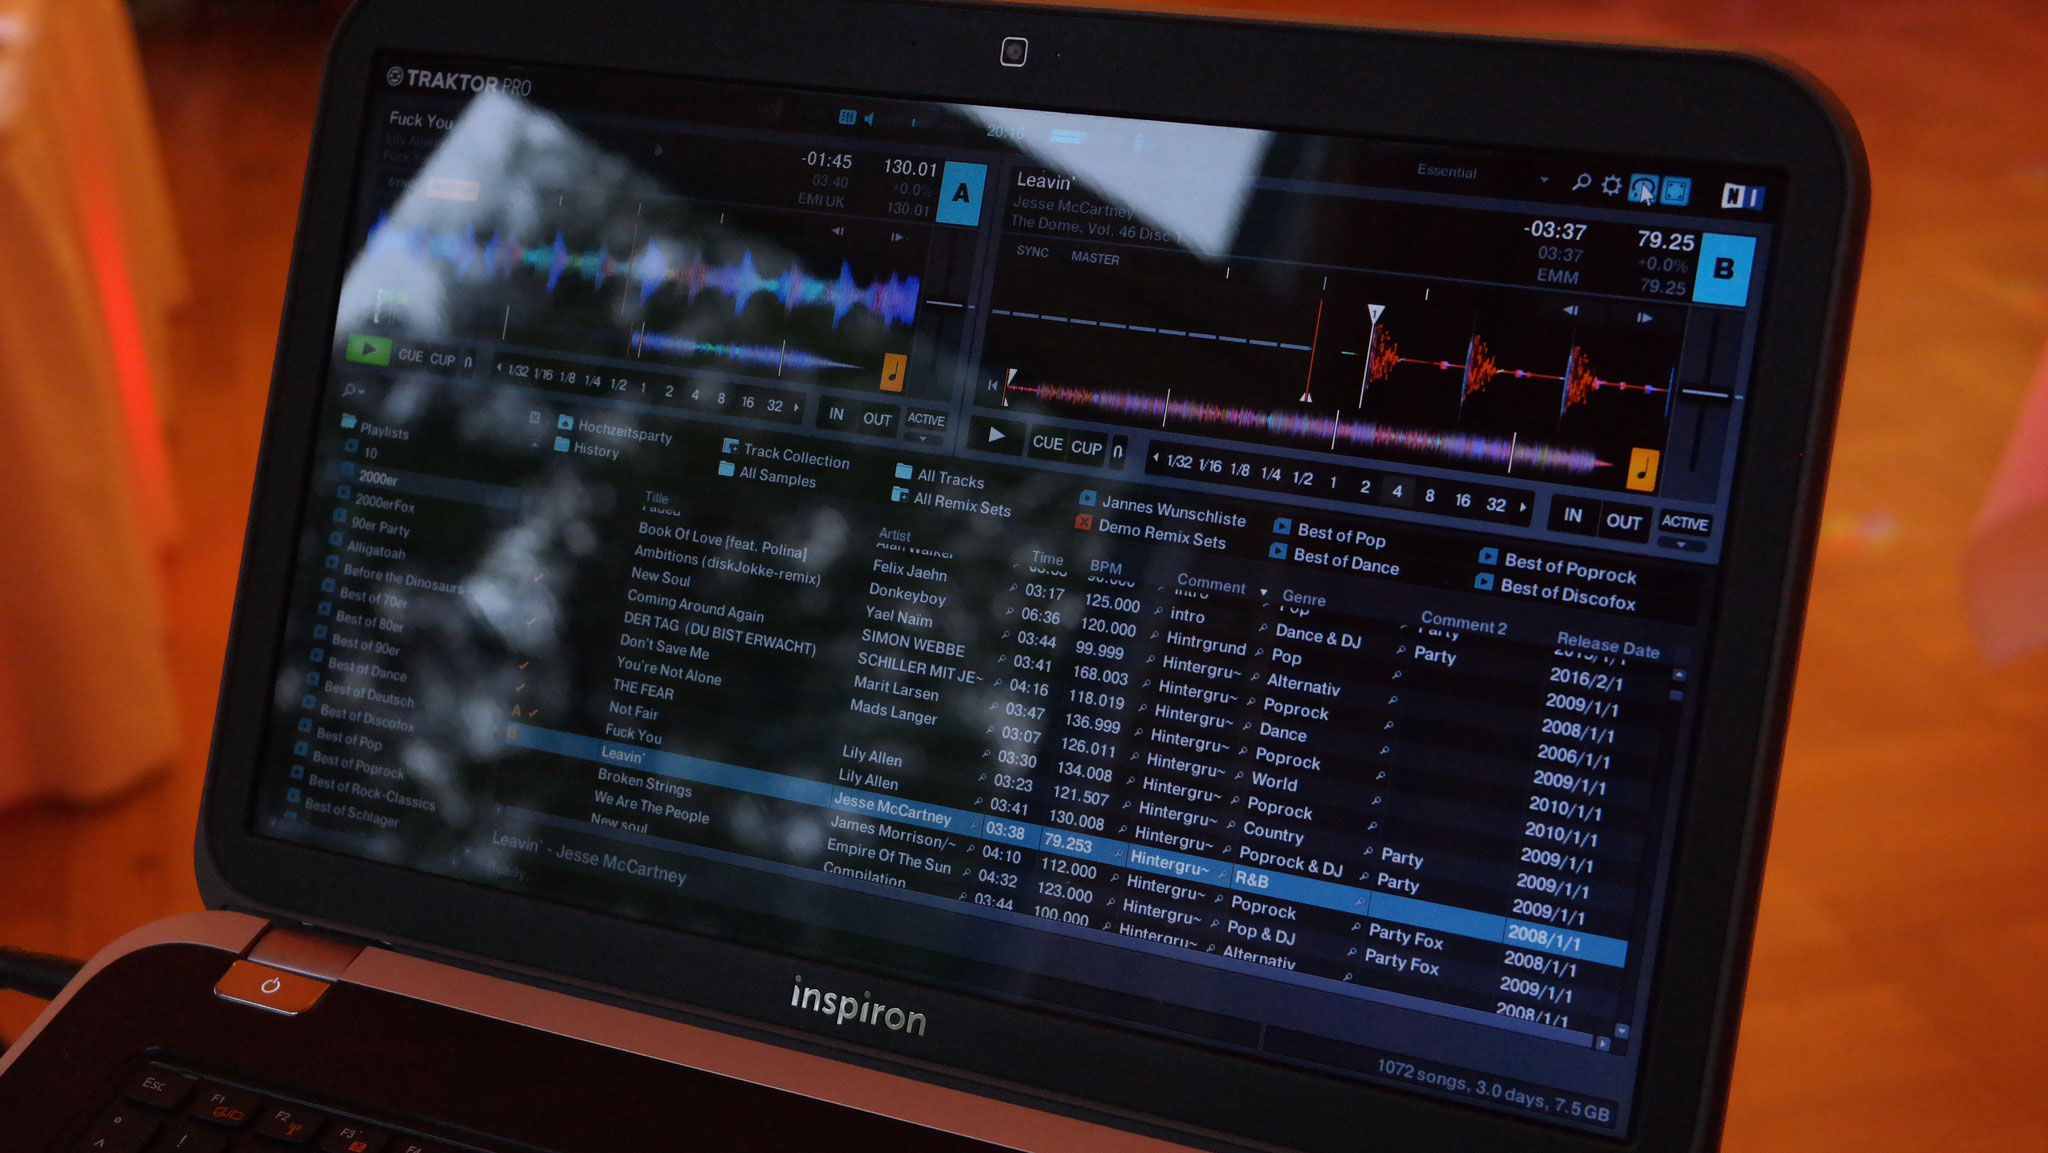 DJ-Software Traktor Pro2 von Nativ Instruments auf Core I7 Notebook von Dell